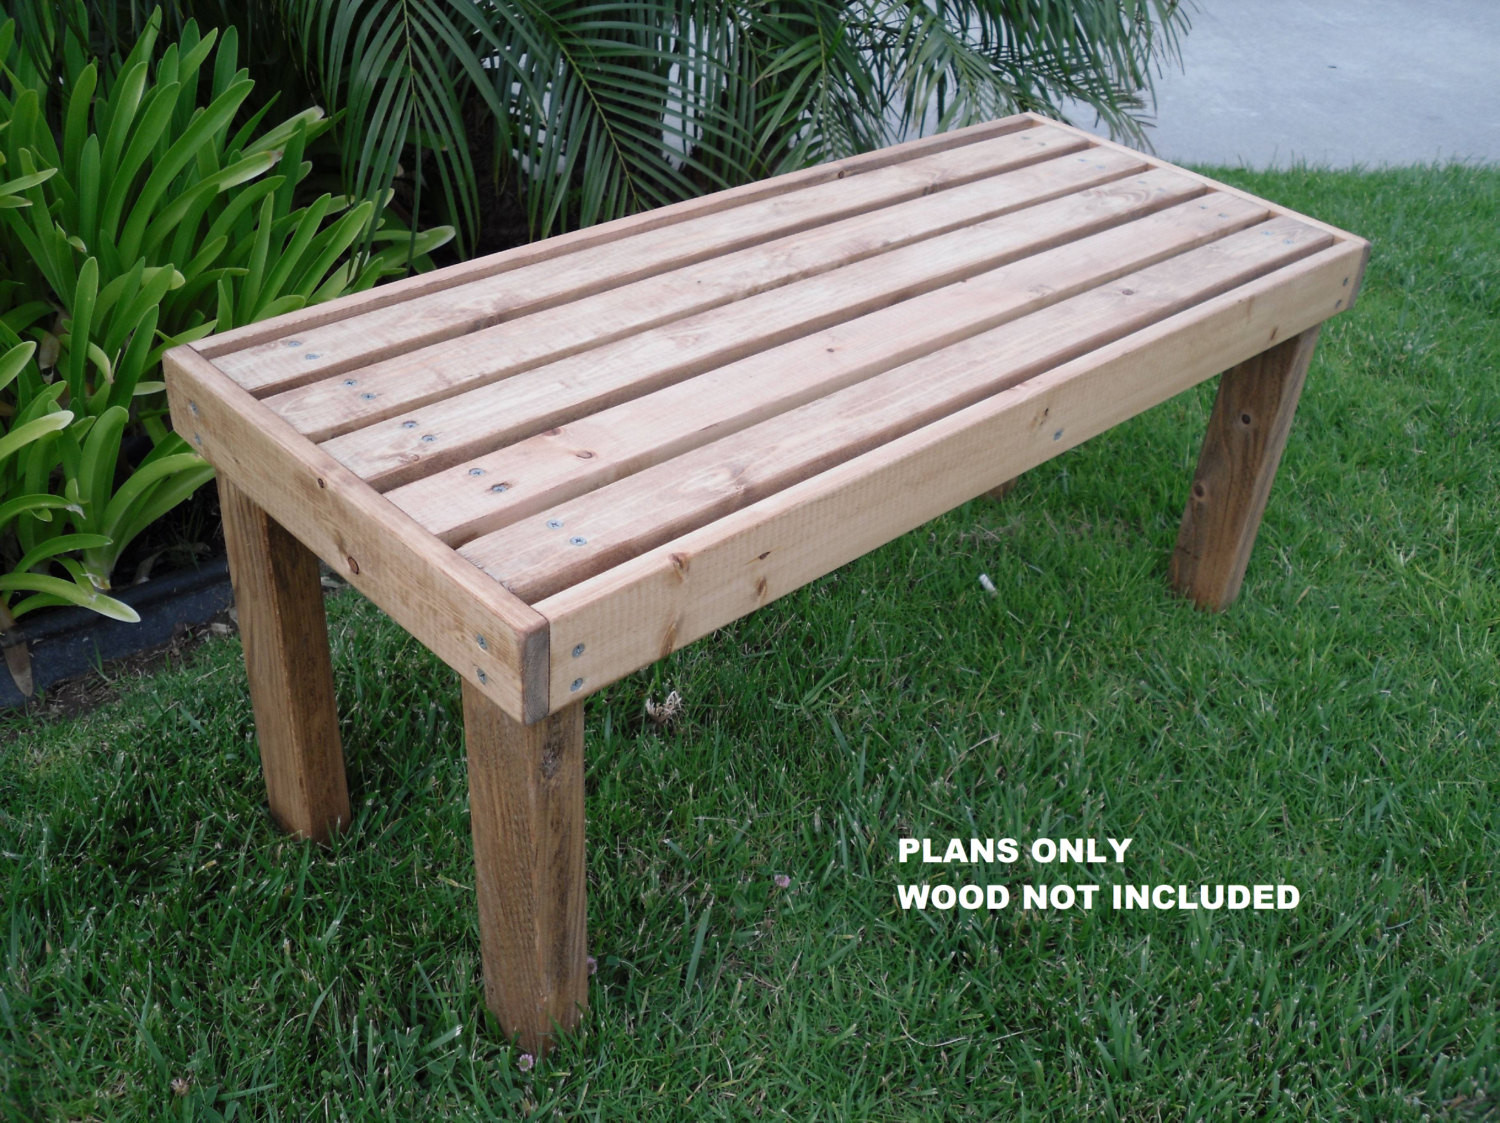 Best ideas about DIY Outdoor Benches . Save or Pin DIY PLANS to make Flat Bench Outdoor Furniture for Now.